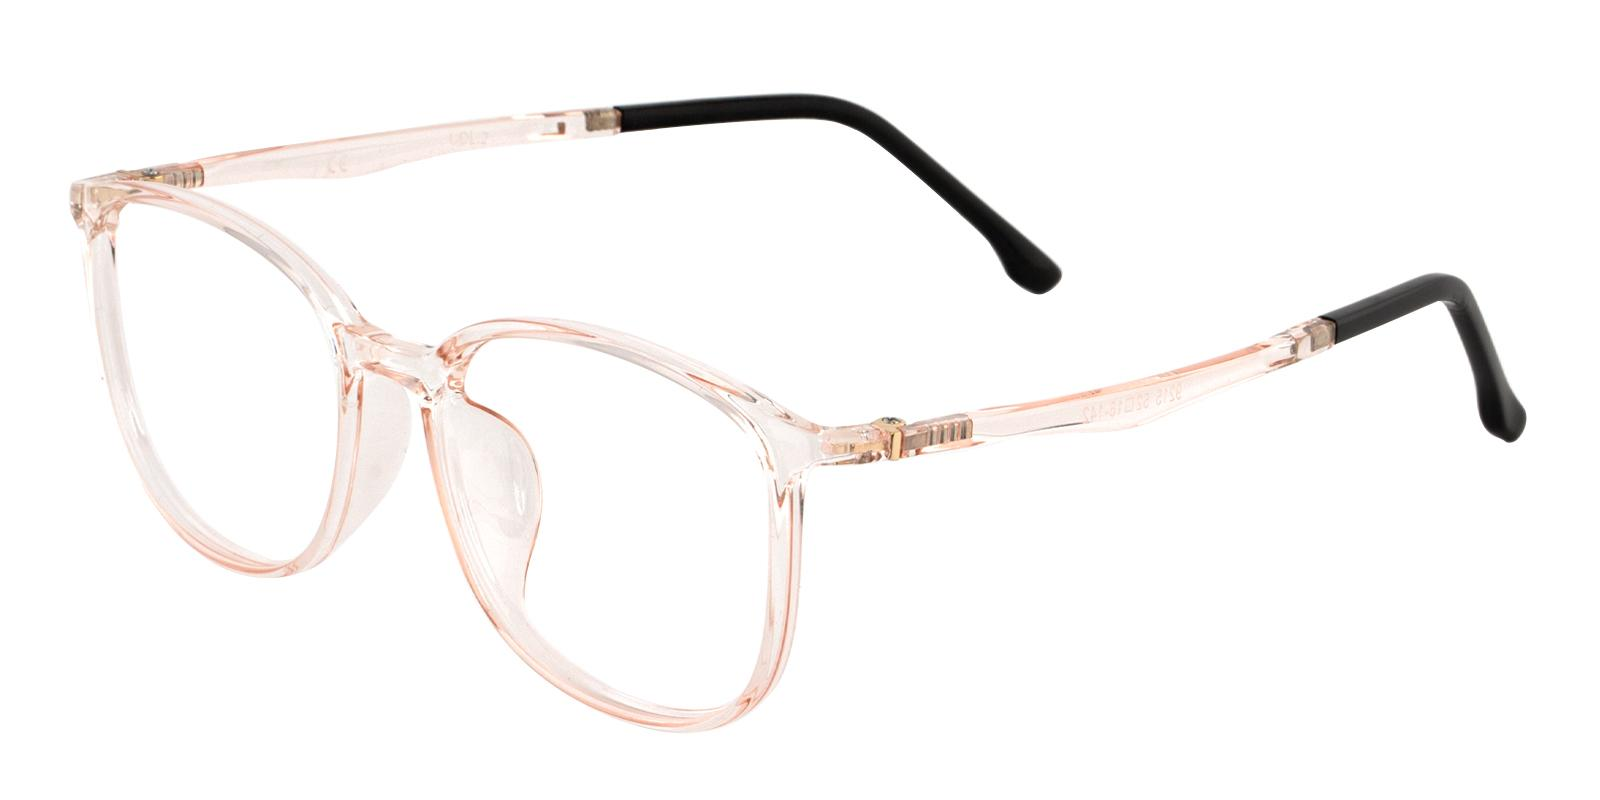 Leah Orange TR Eyeglasses , Lightweight , UniversalBridgeFit Frames from ABBE Glasses